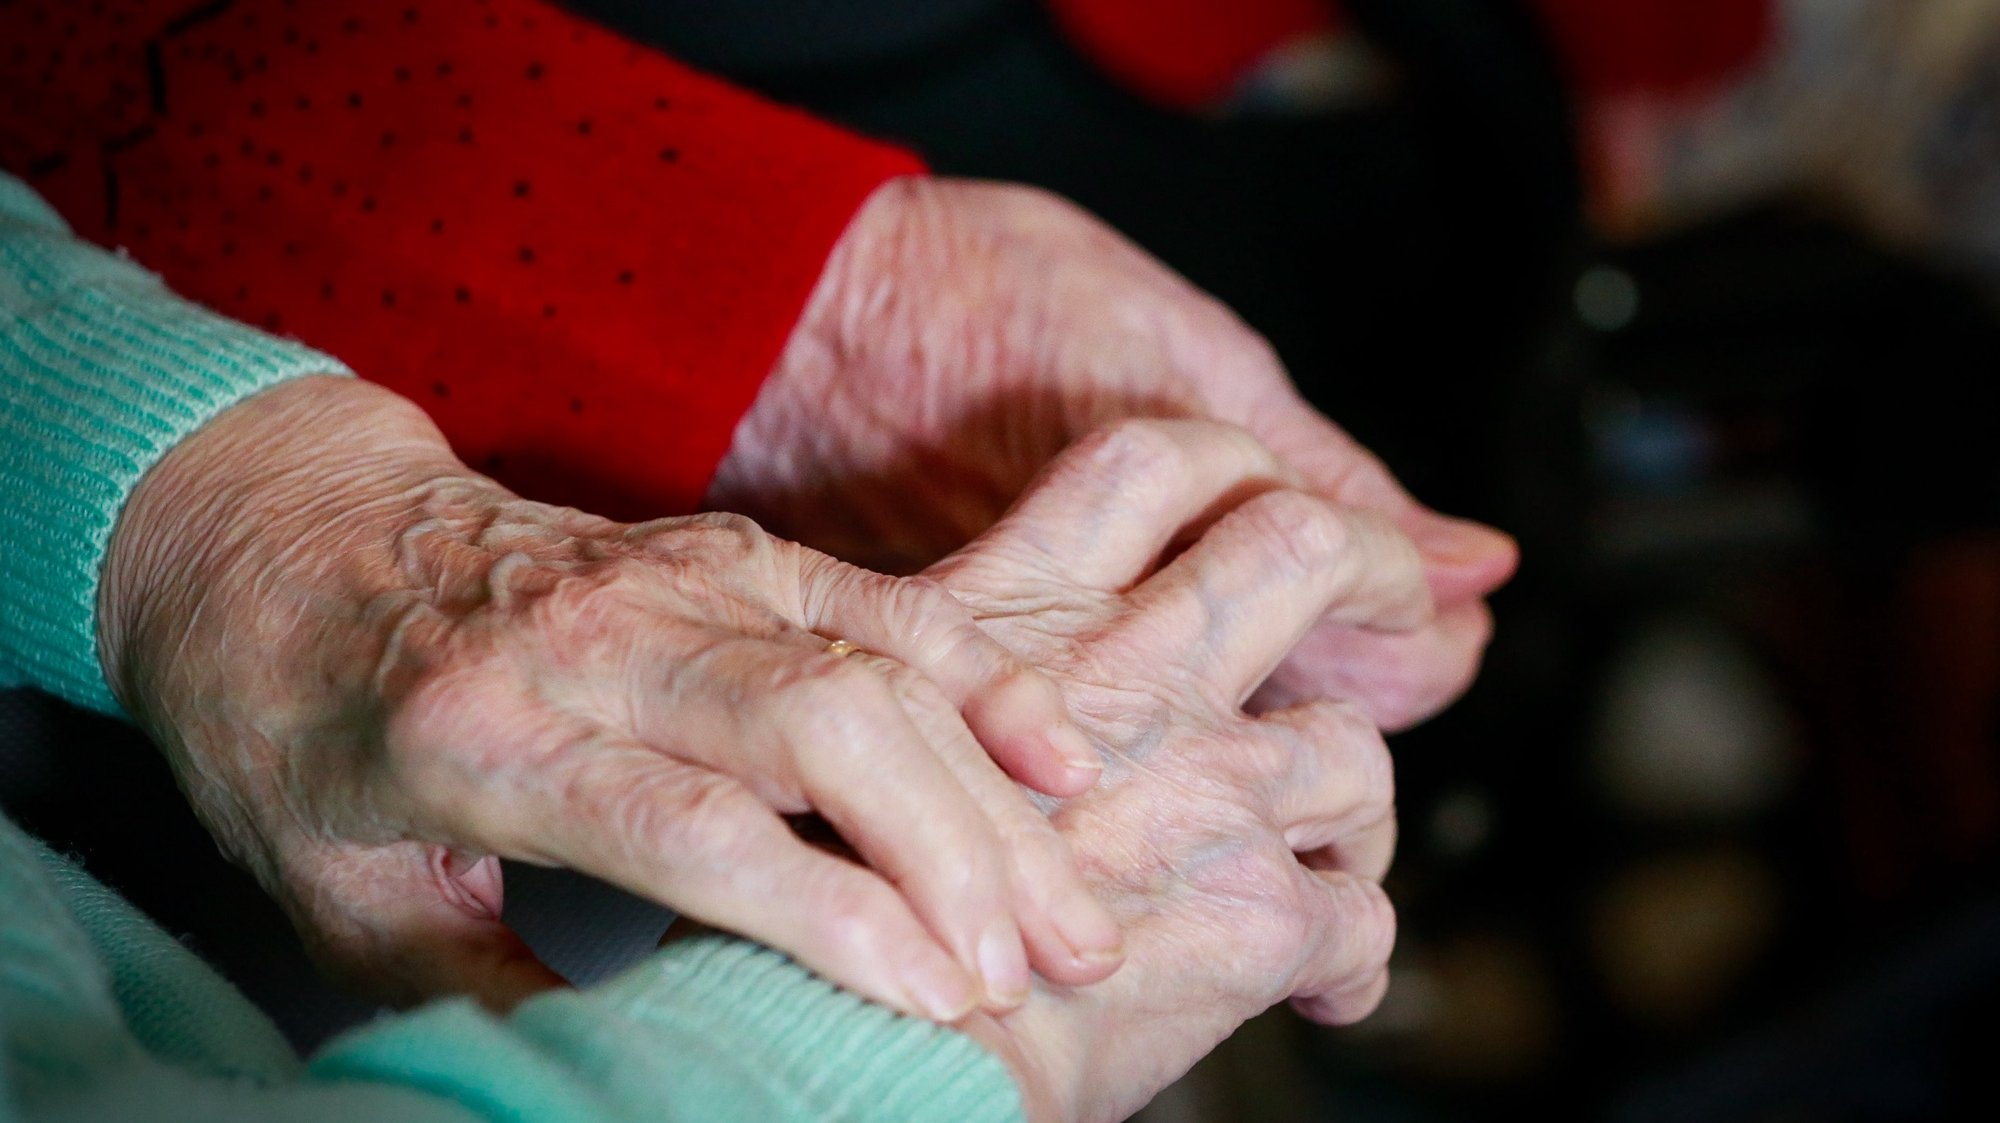 epa08786229 Two friends resident hold each other hands while they watch TV show at the 'Notre Dame De Bonne Esperance' nursing home in Chatelet, Belgium, 30 October 2020. Due to COVID-19, residents of the nursing home are not allowed to leave among the measures taken to protect residents from the spread of coronavirus.  EPA/STEPHANIE LECOCQ